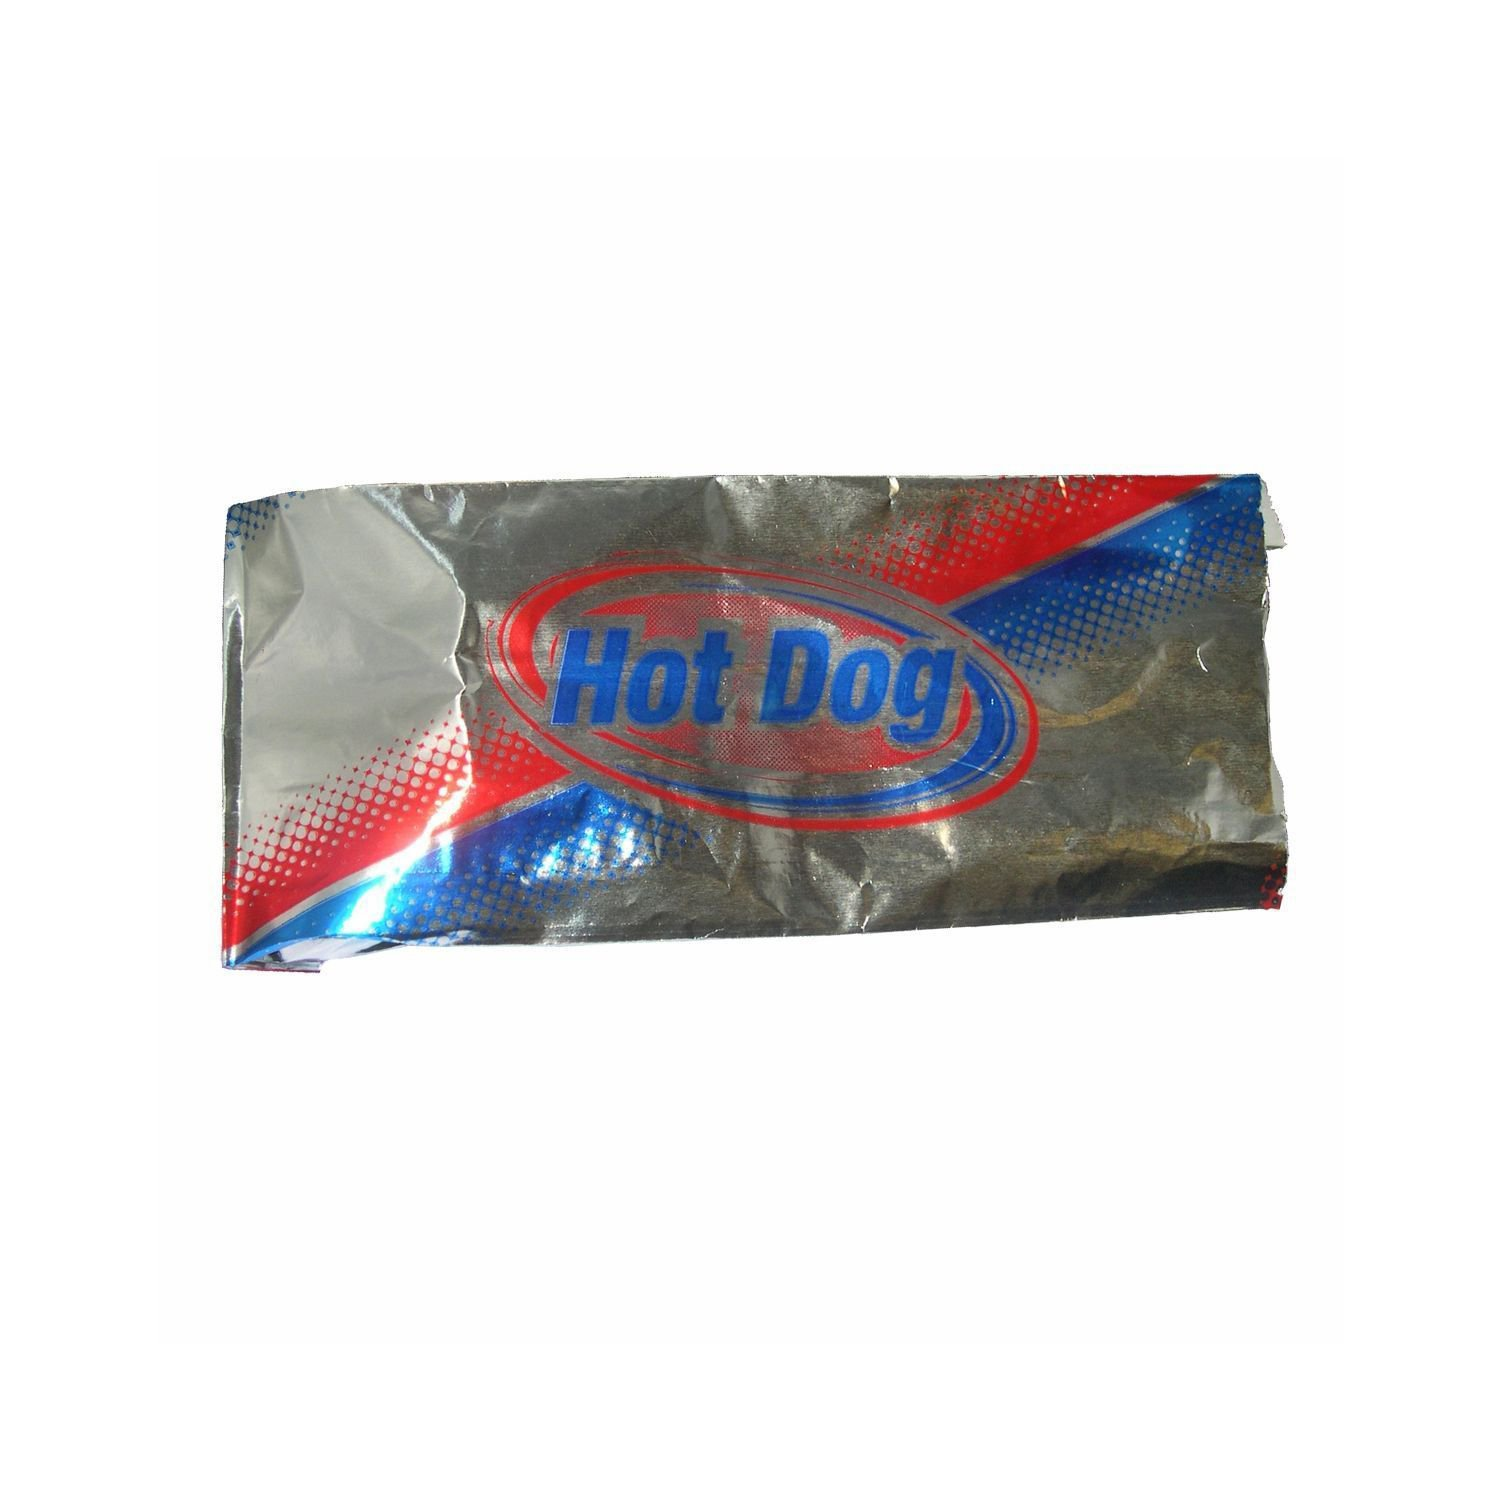 Hot Dog Bag